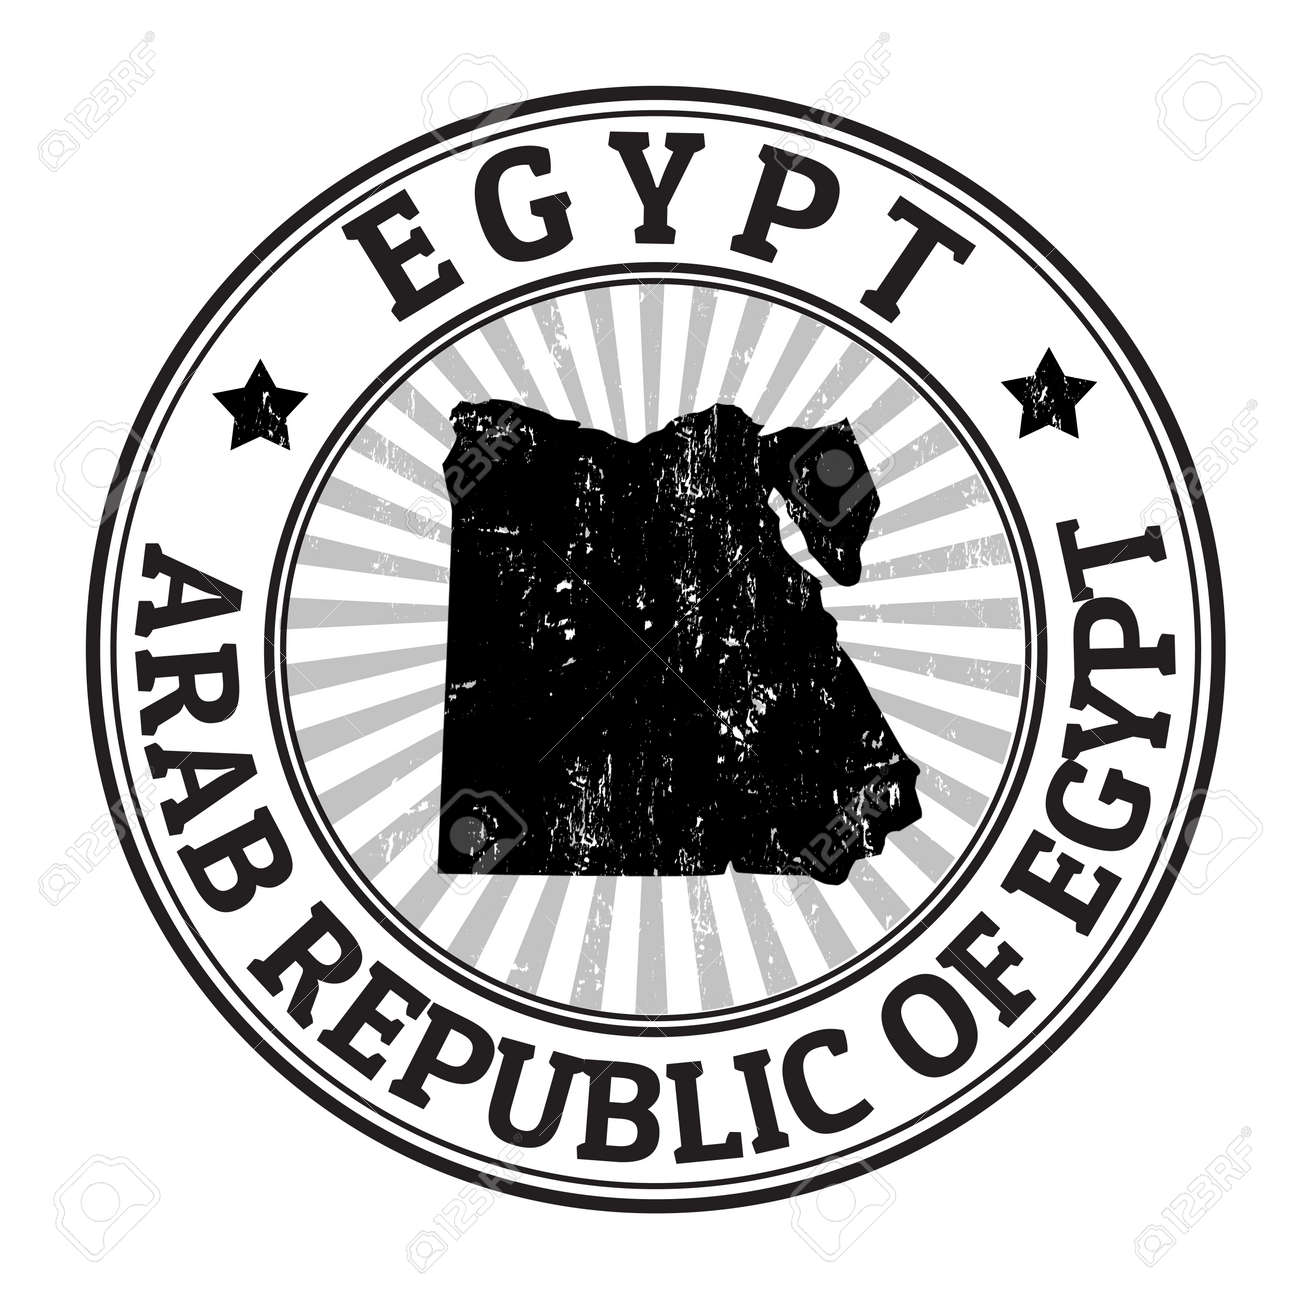 Grunge Rubber Stamp With The Name And Map Of Egypt Vector - Map of egypt vector free